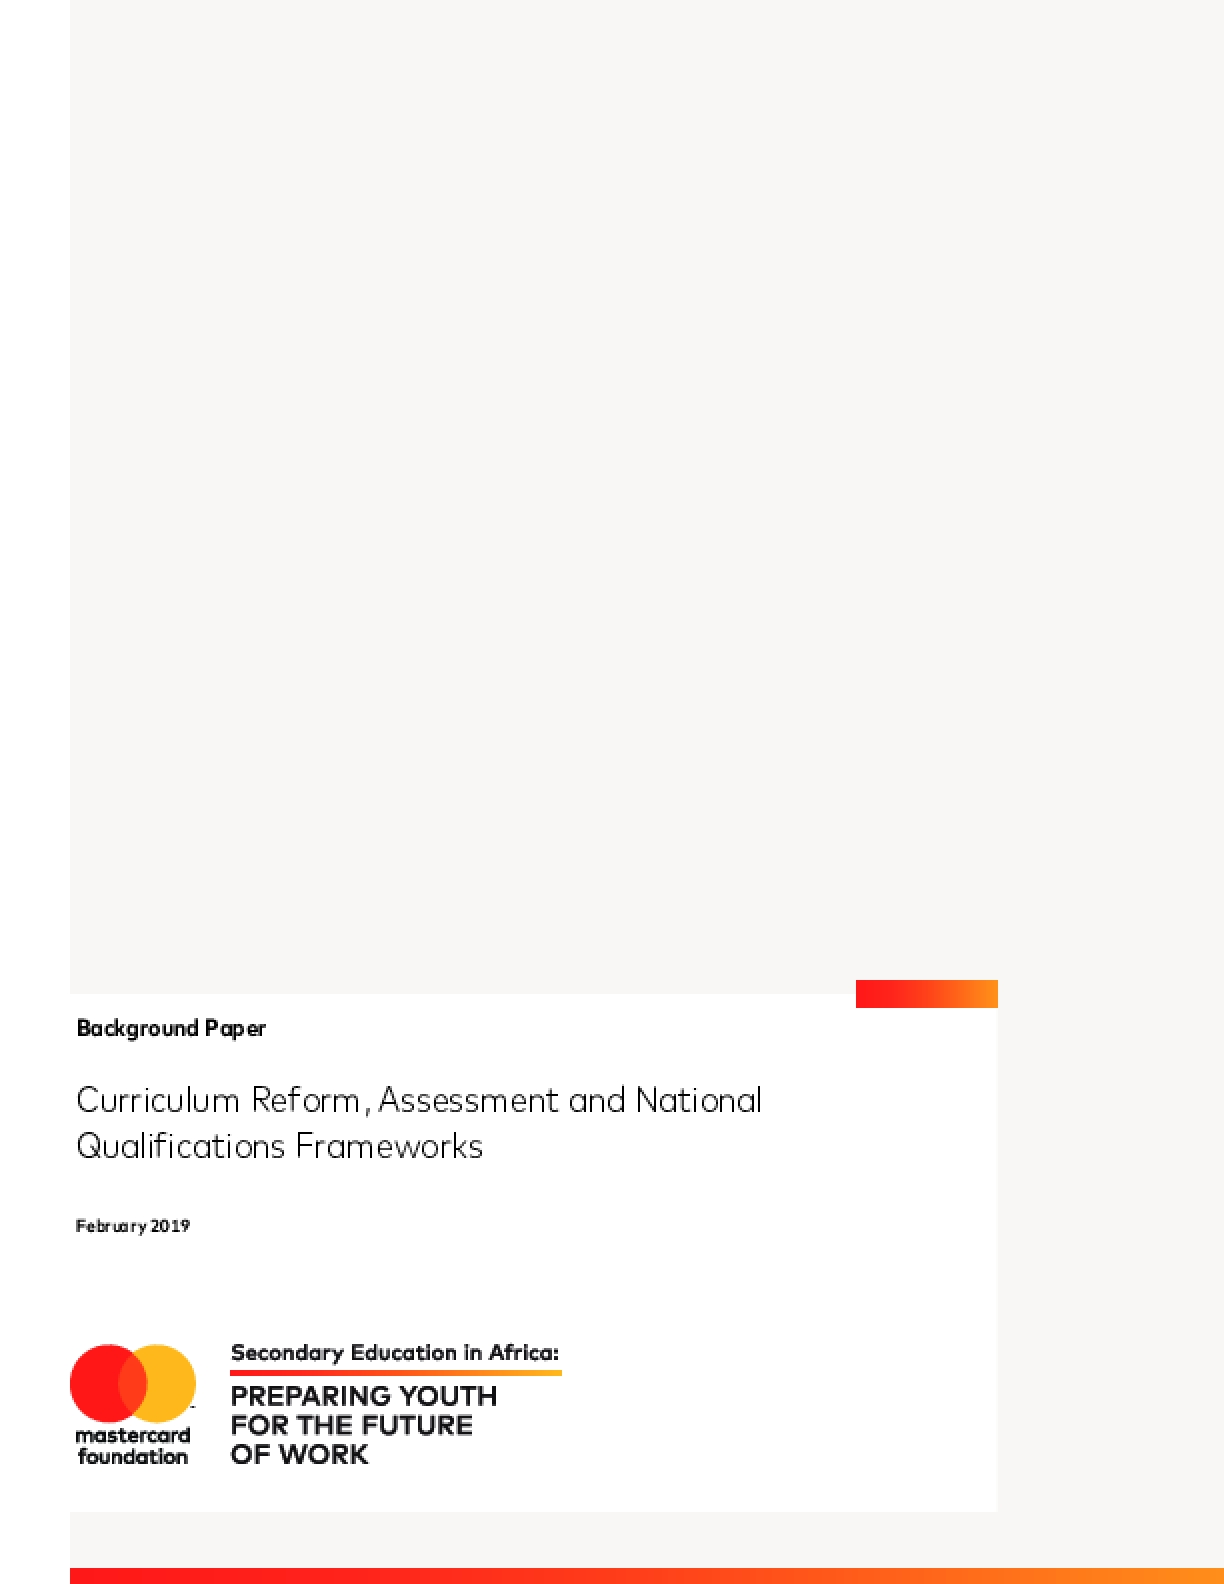 Curriculum Reform, Assessment and National Qualifications Frameworks